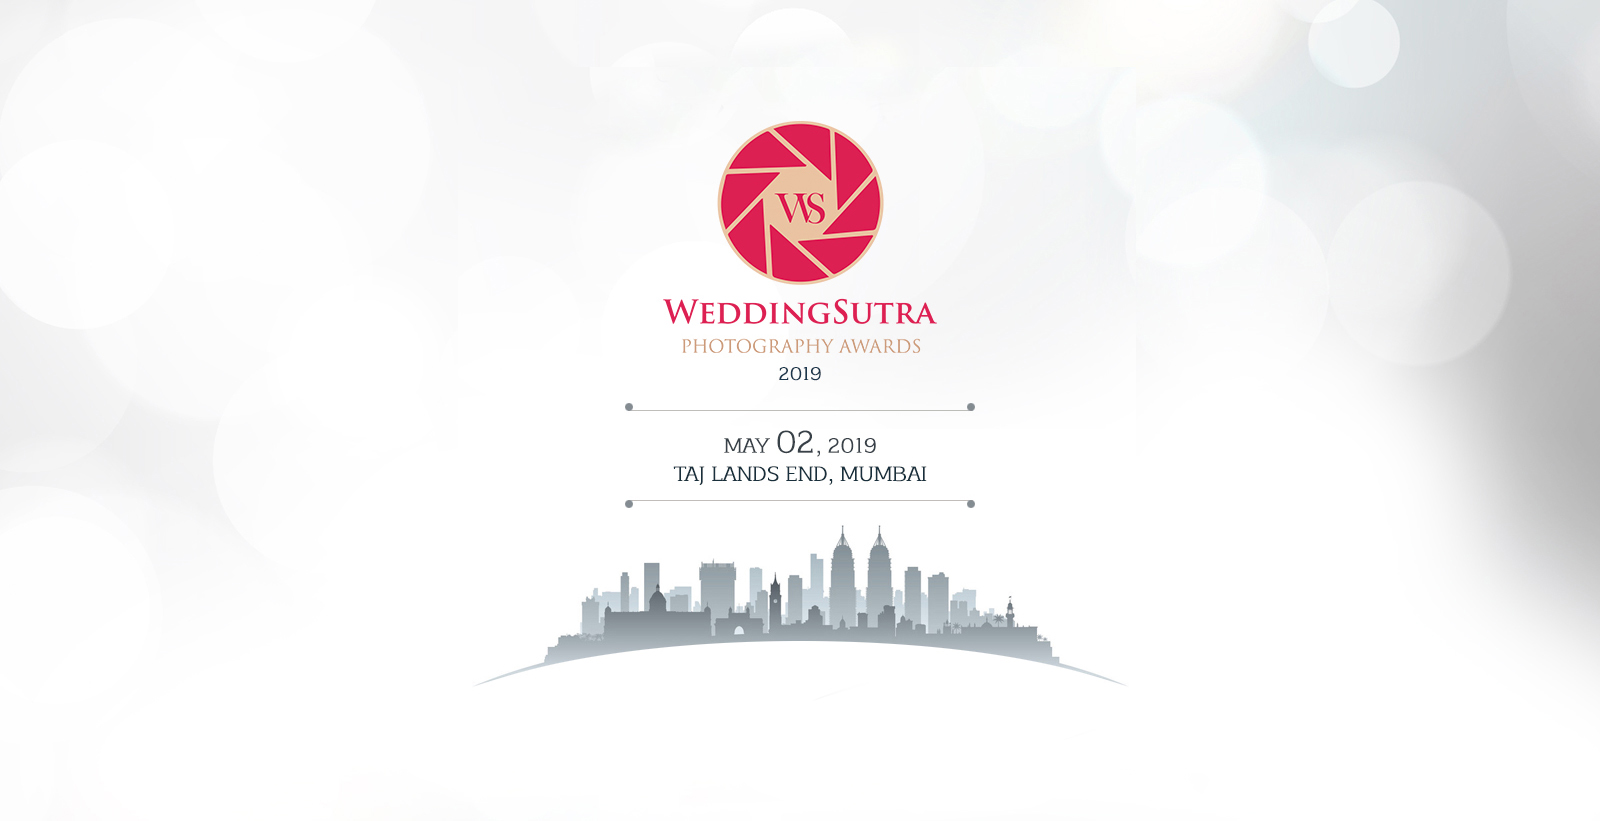 WEDDINGSUTRA PHOTOGRAPHY AWARDS